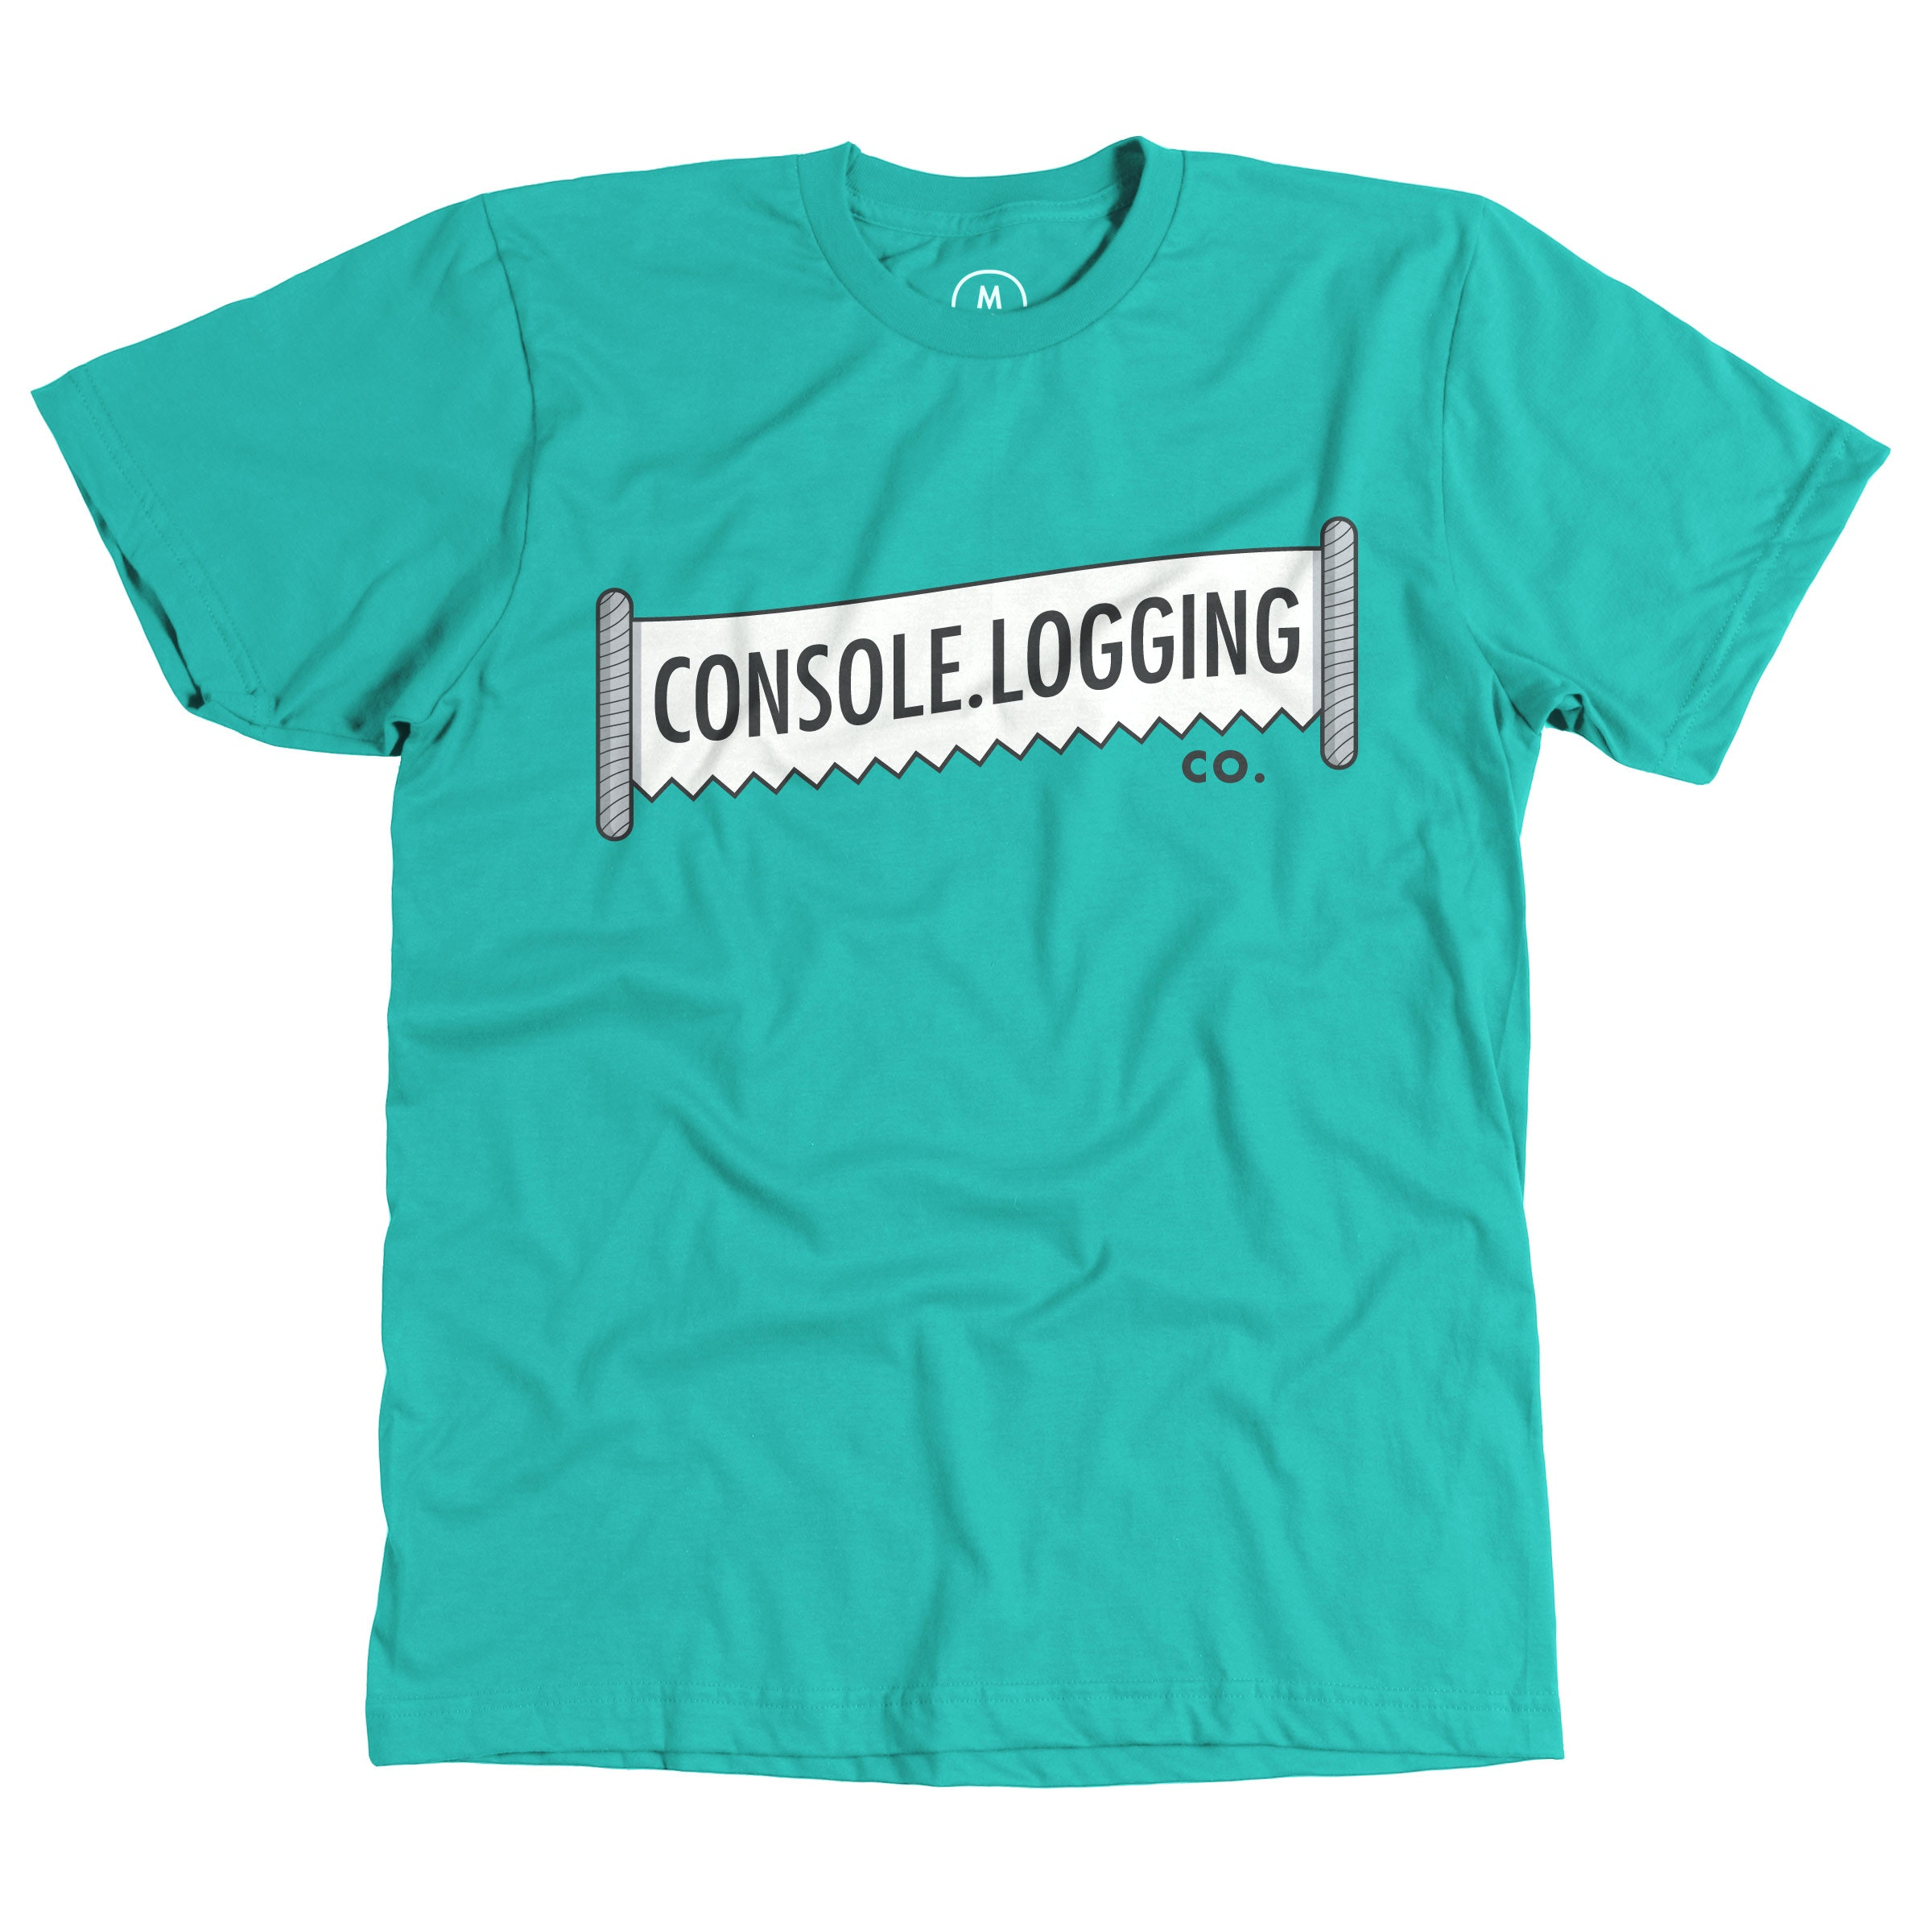 Console.Logging His